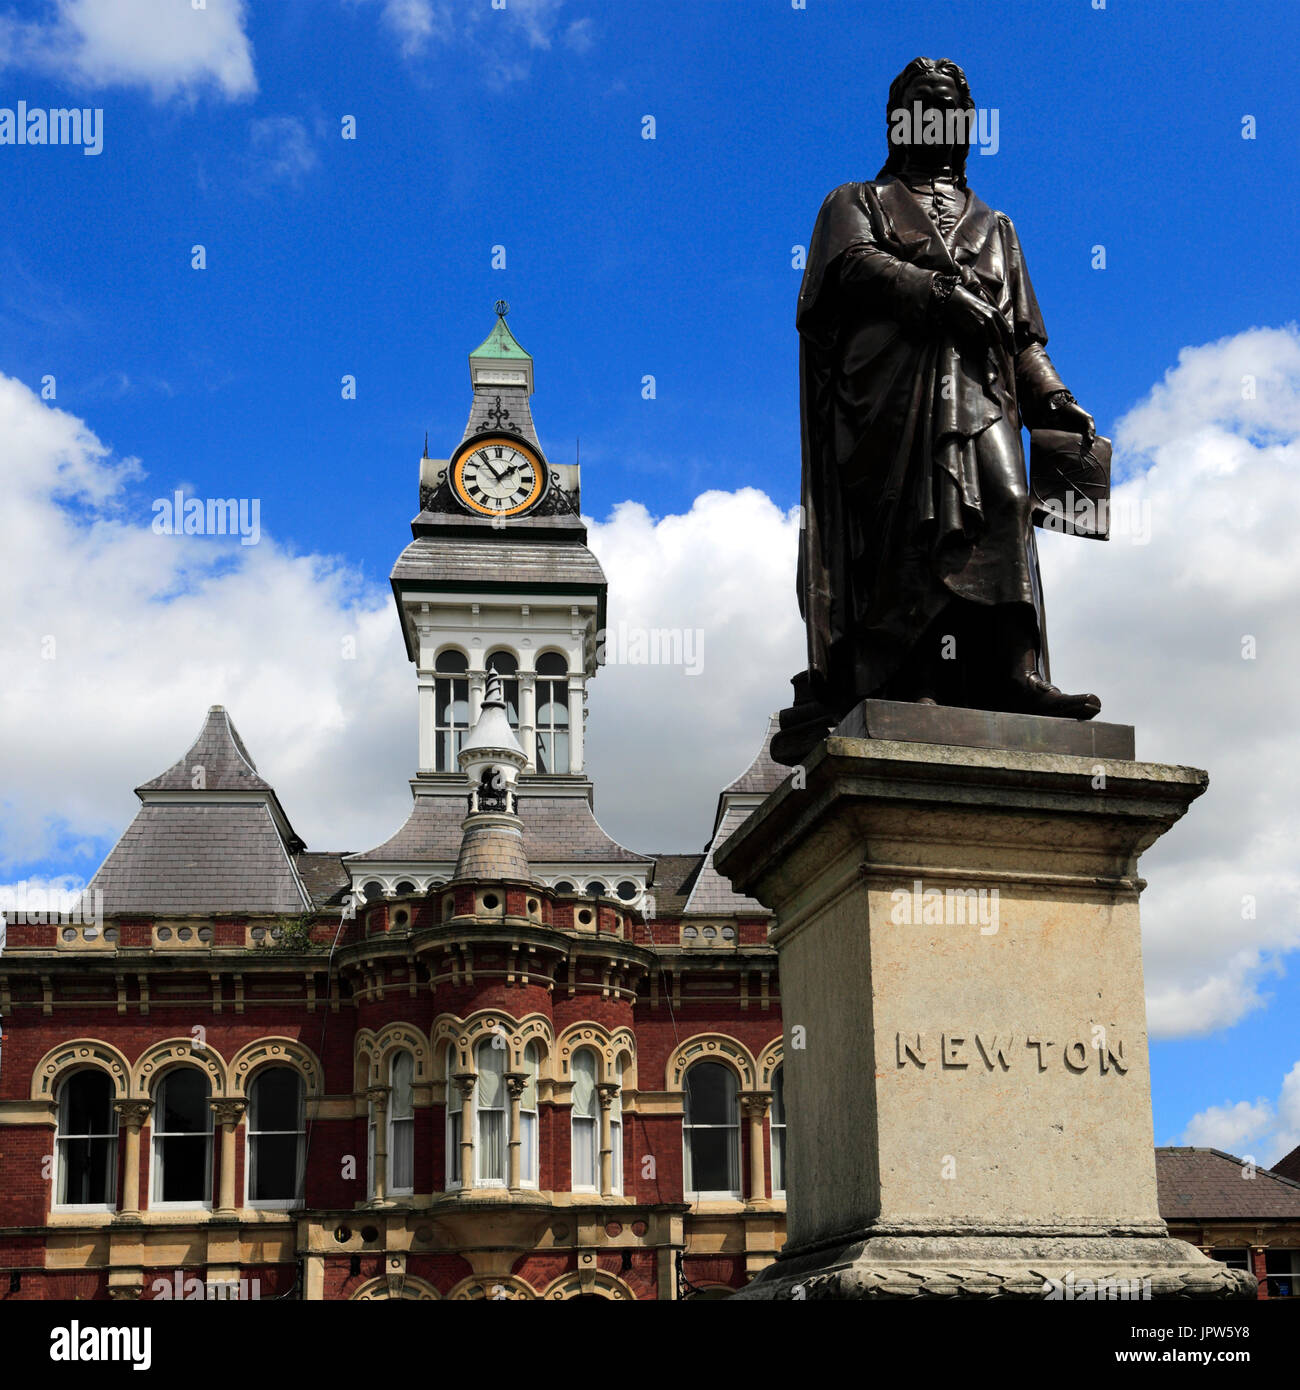 Statue of Sir Issac Newton and the Guildhall, Town hall of Grantham, Lincolnshire, England, UK Stock Photo